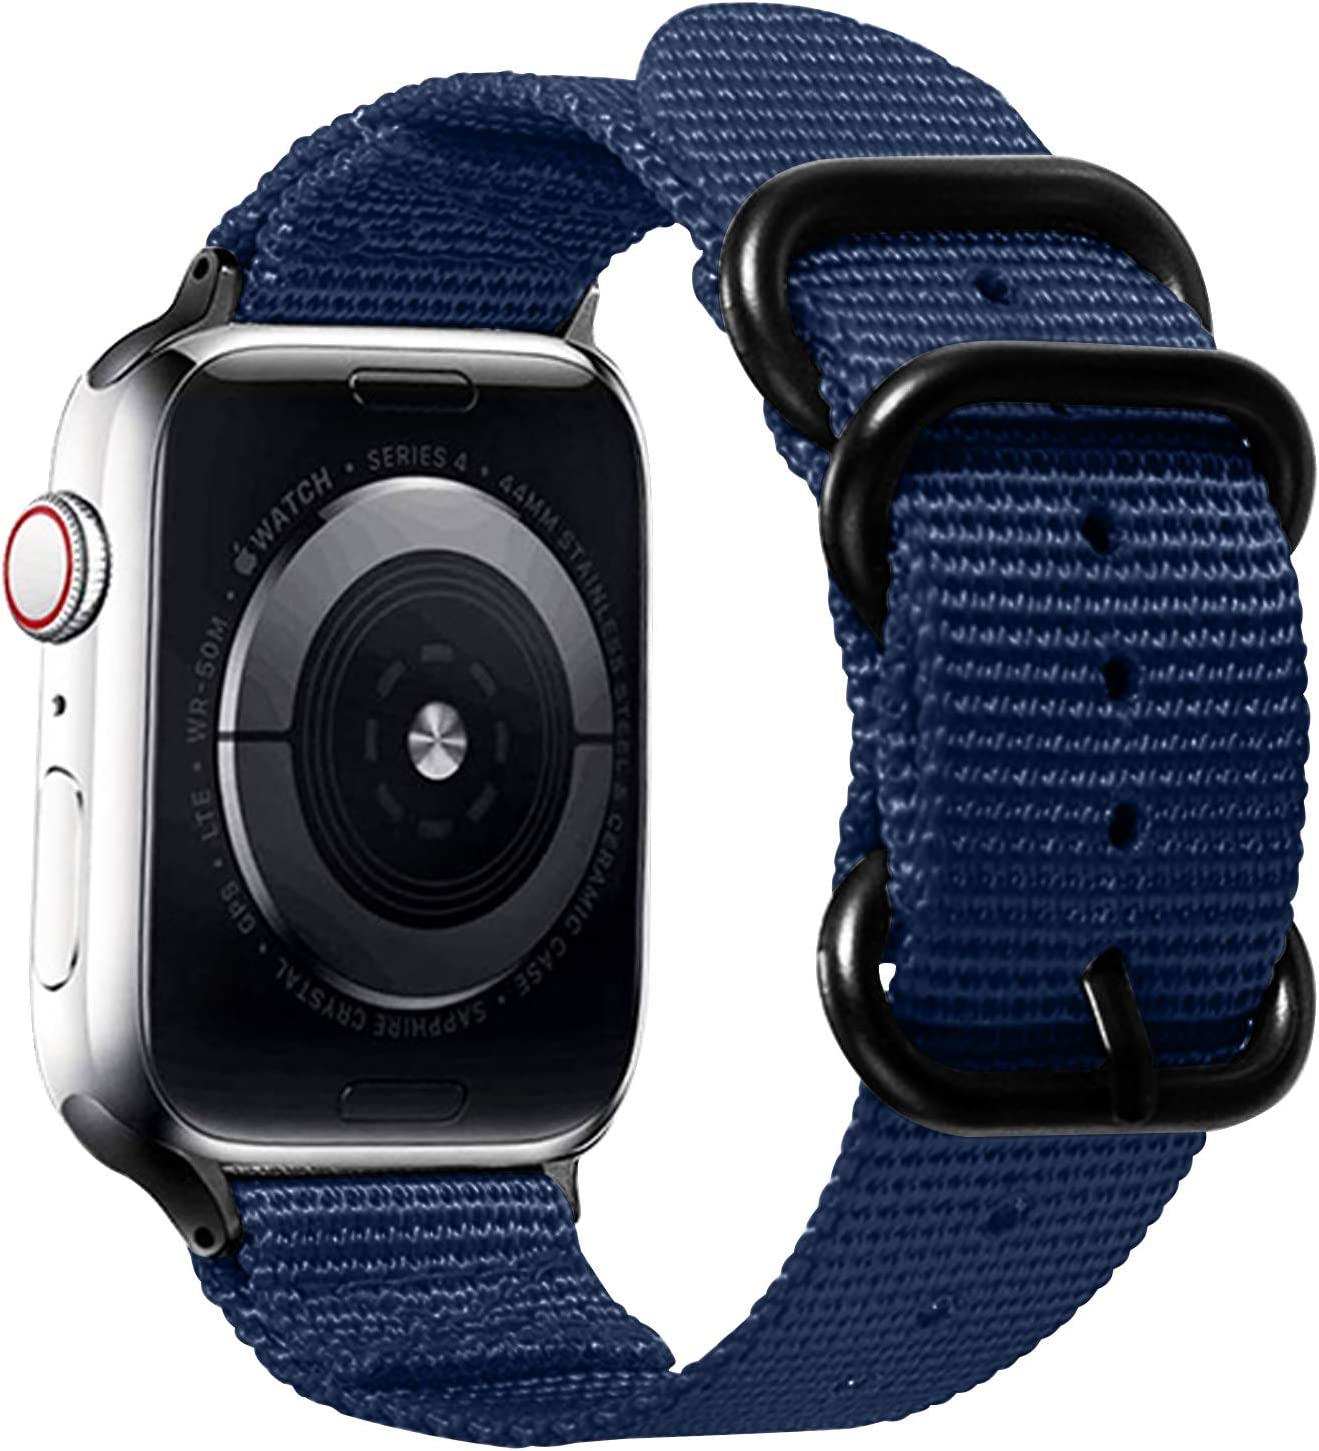 Watpro Compatible with Apple Watch Band 38mm 40mm 42mm 44mm Women Men Nylon Rugged Replacement iWatch Band Military-Style Buckle Grey Adapters for Sport Series 5 4 3 2 1 (1-Navy Blue, 42MM/44MM)